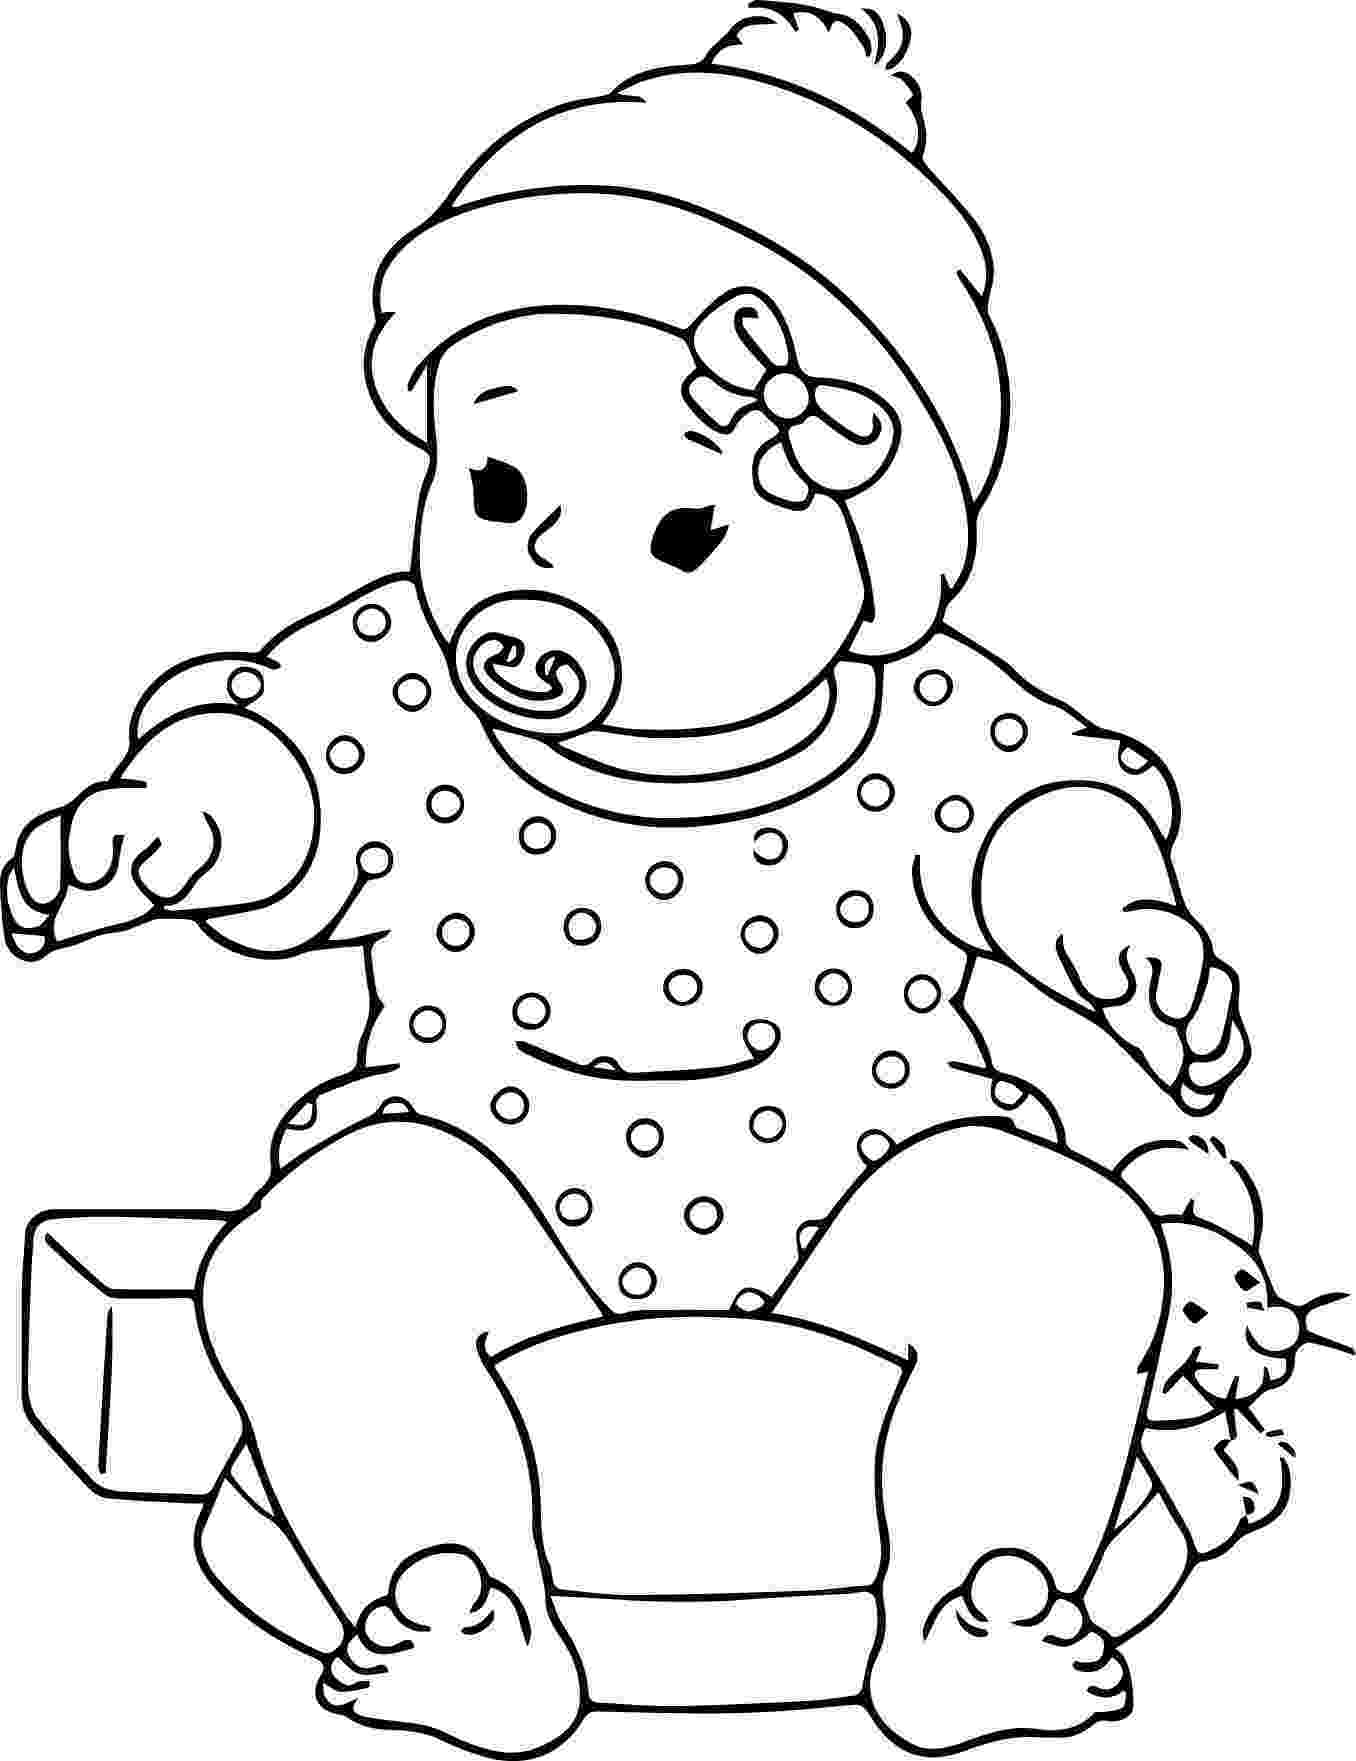 free baby animal coloring pages to print animals coloring pages getcoloringpagescom animal baby pages free coloring to print